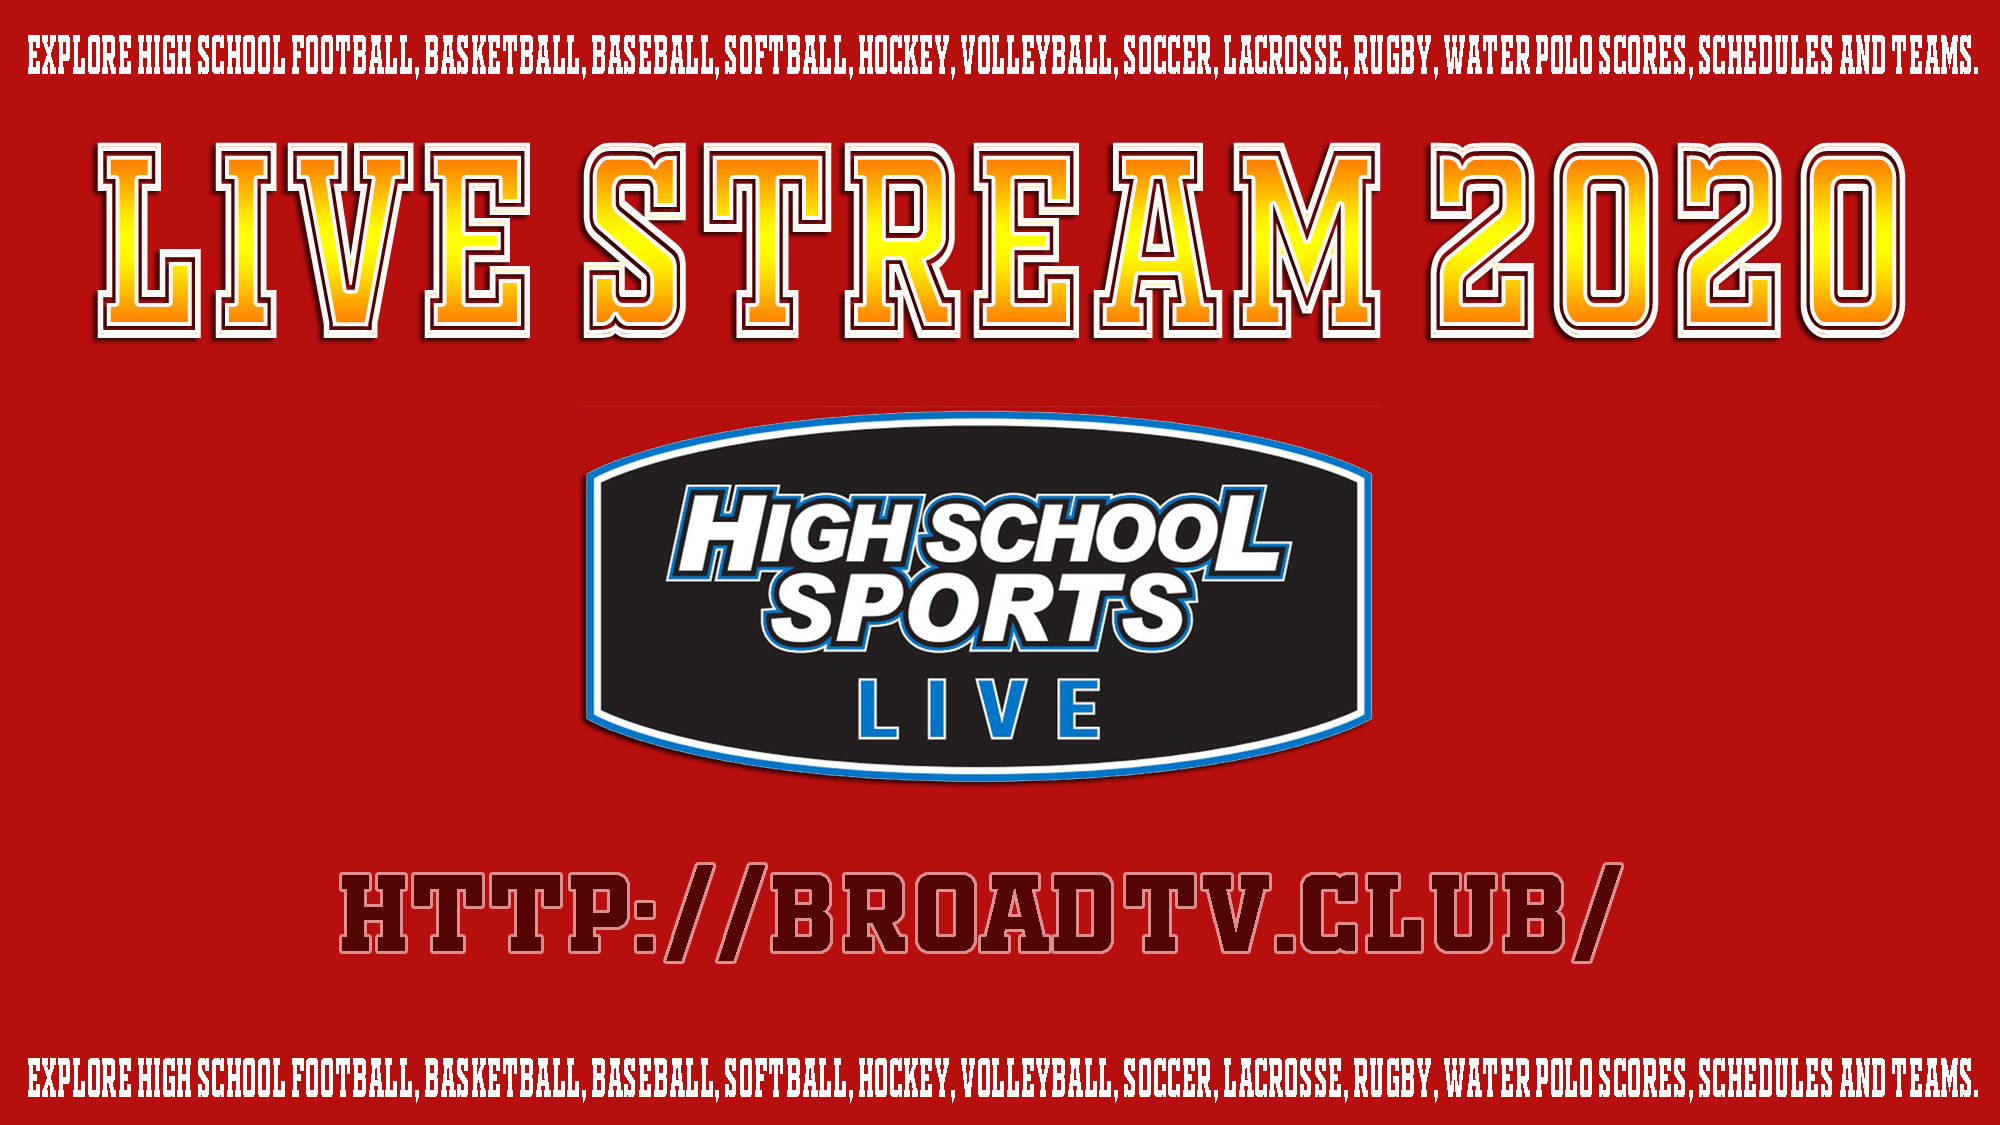 Highschool Live Stream 2020